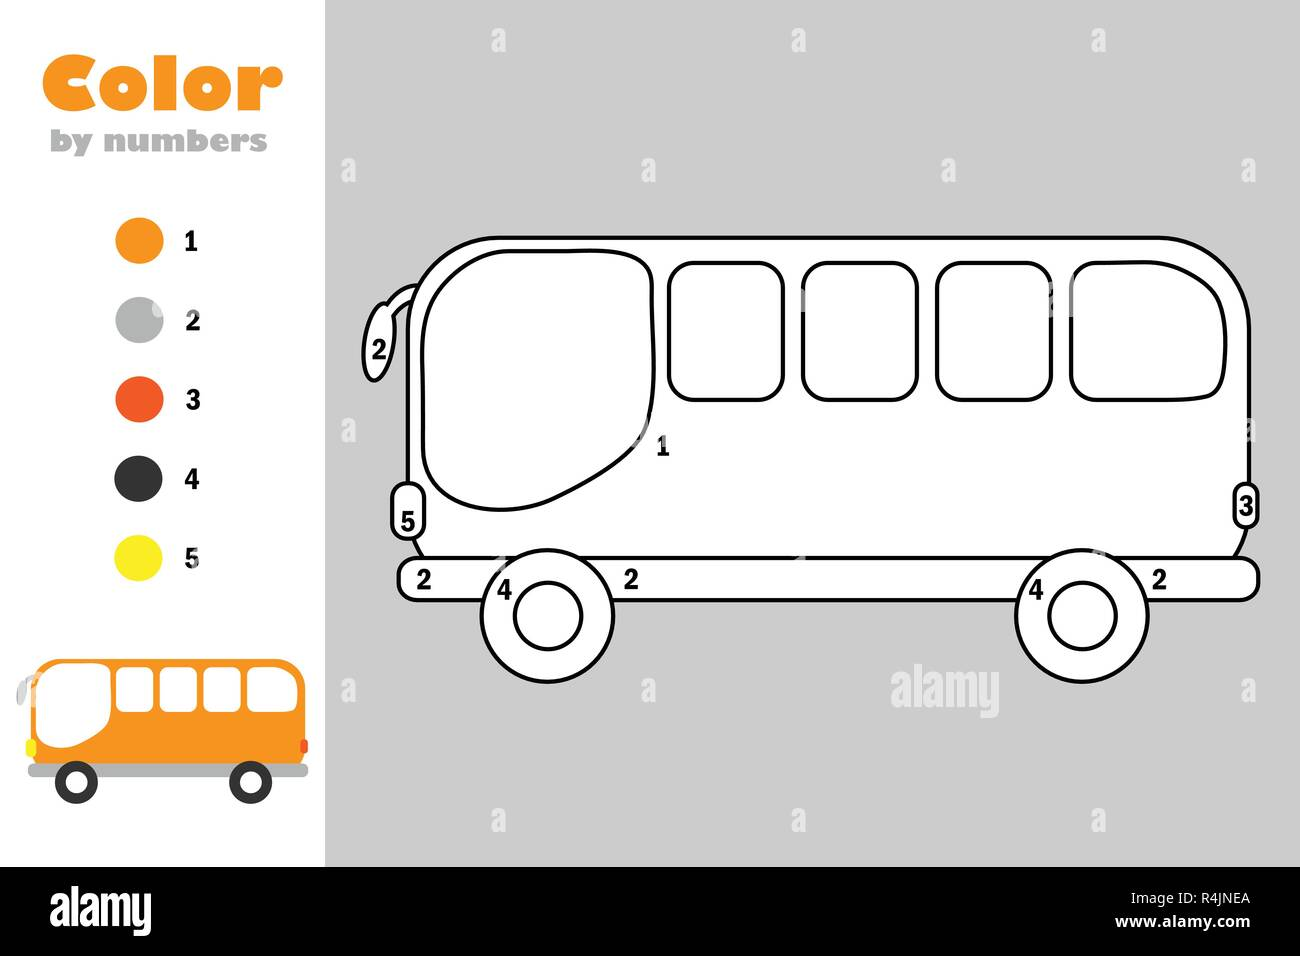 image regarding Bus Printable identified as Bus inside cartoon layout, coloration as a result of amount, schooling paper activity